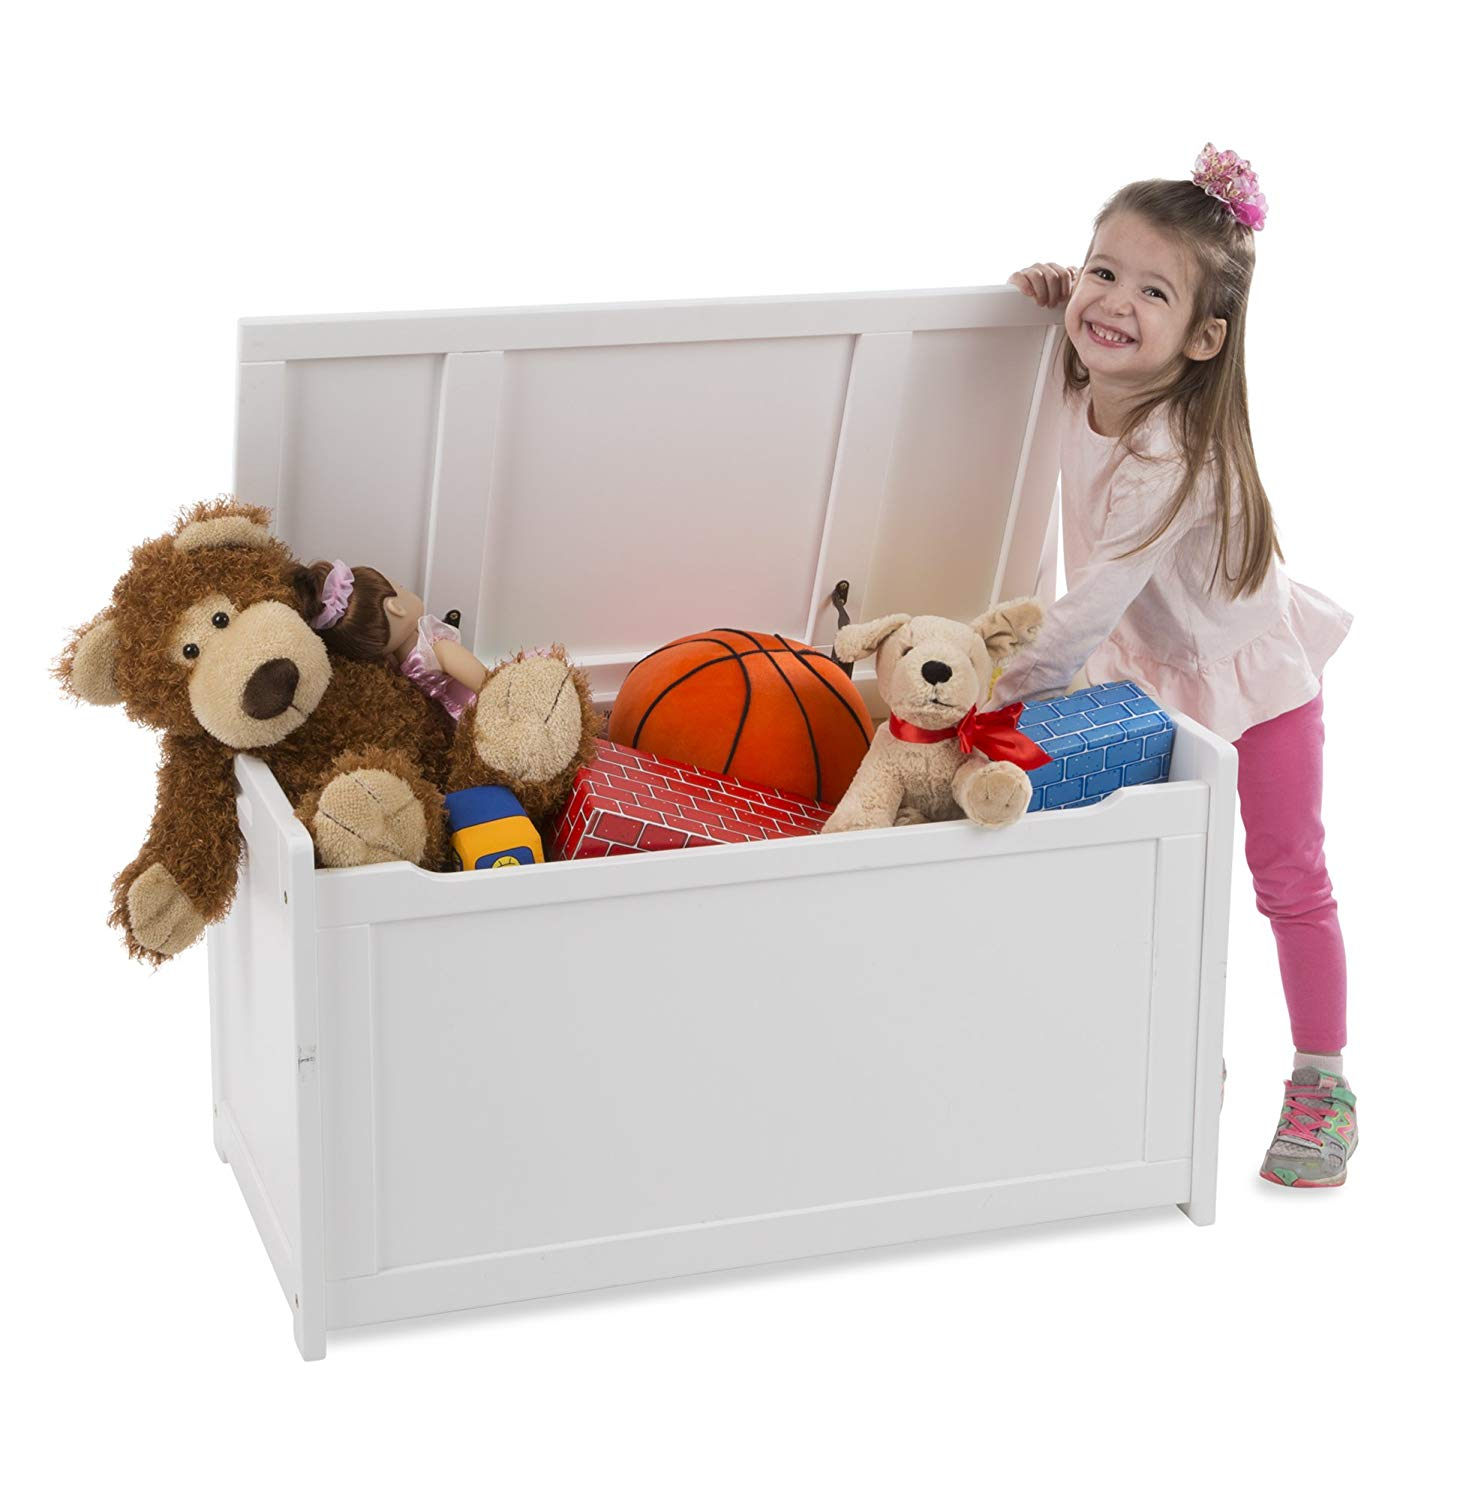 Melissa Amp Doug Wooden Toy Chest Was 119 99 Now 56 27